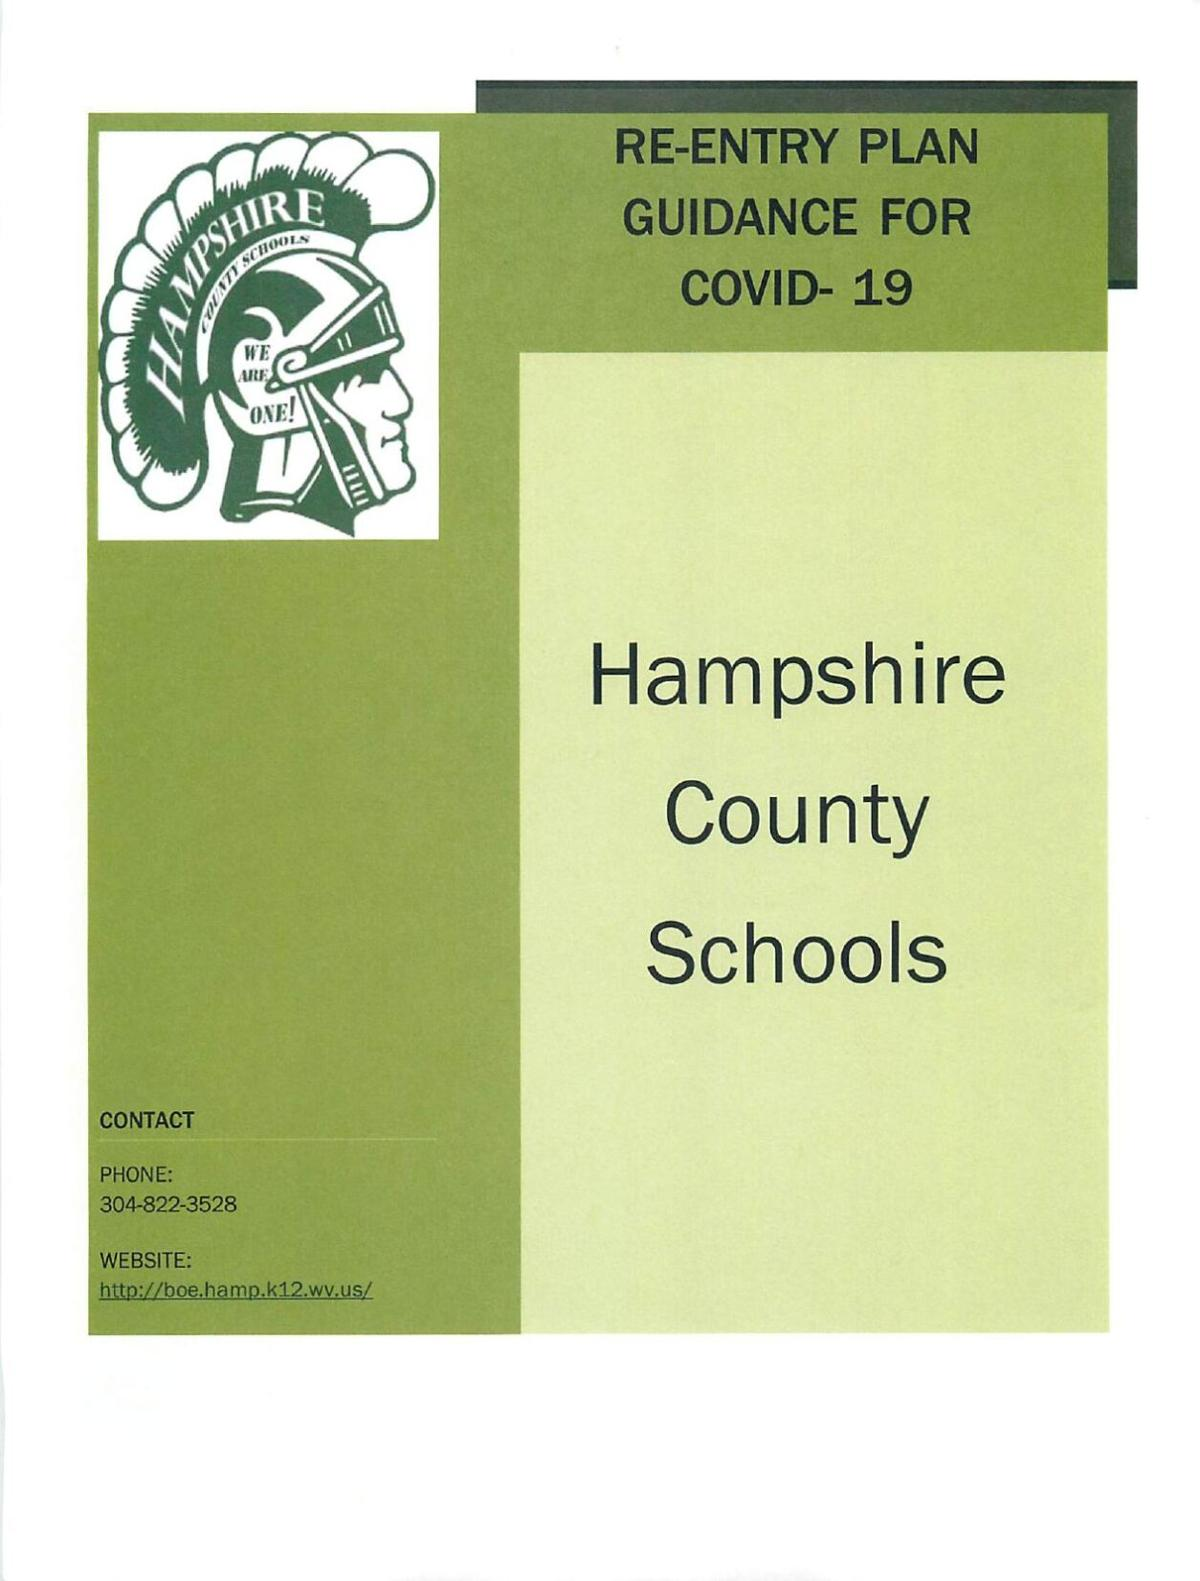 Back to School Guidance: Hampshire County